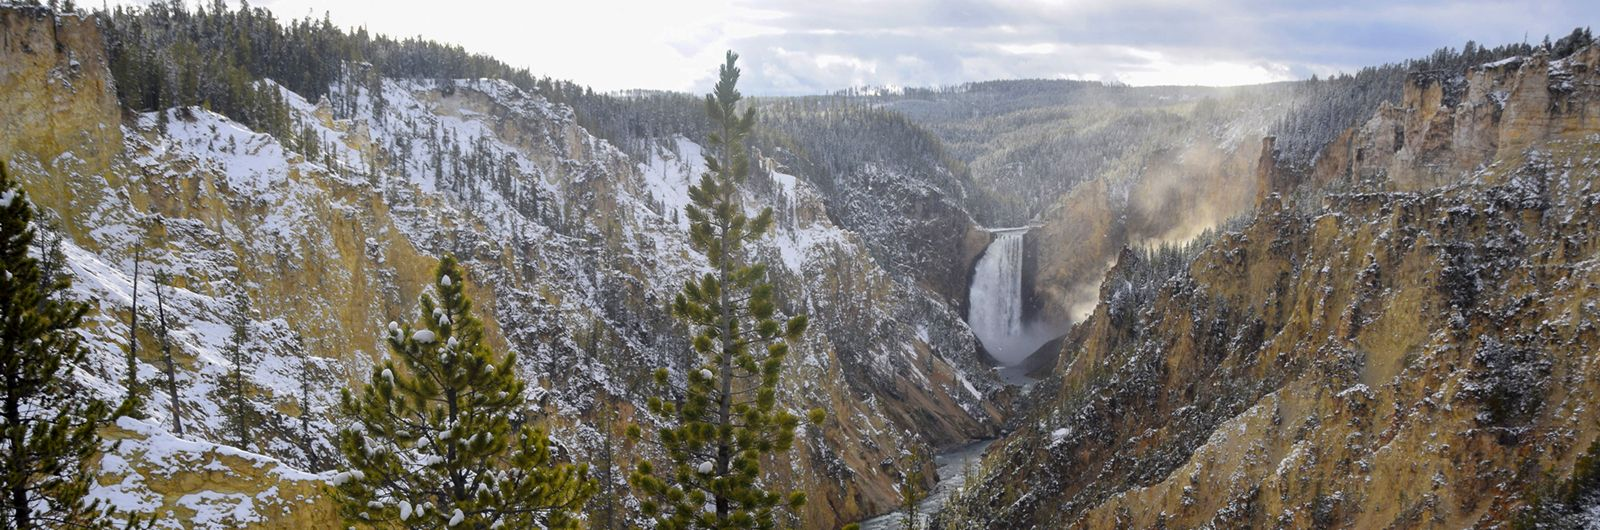 EEUU. De Yellowstone a San Francisco